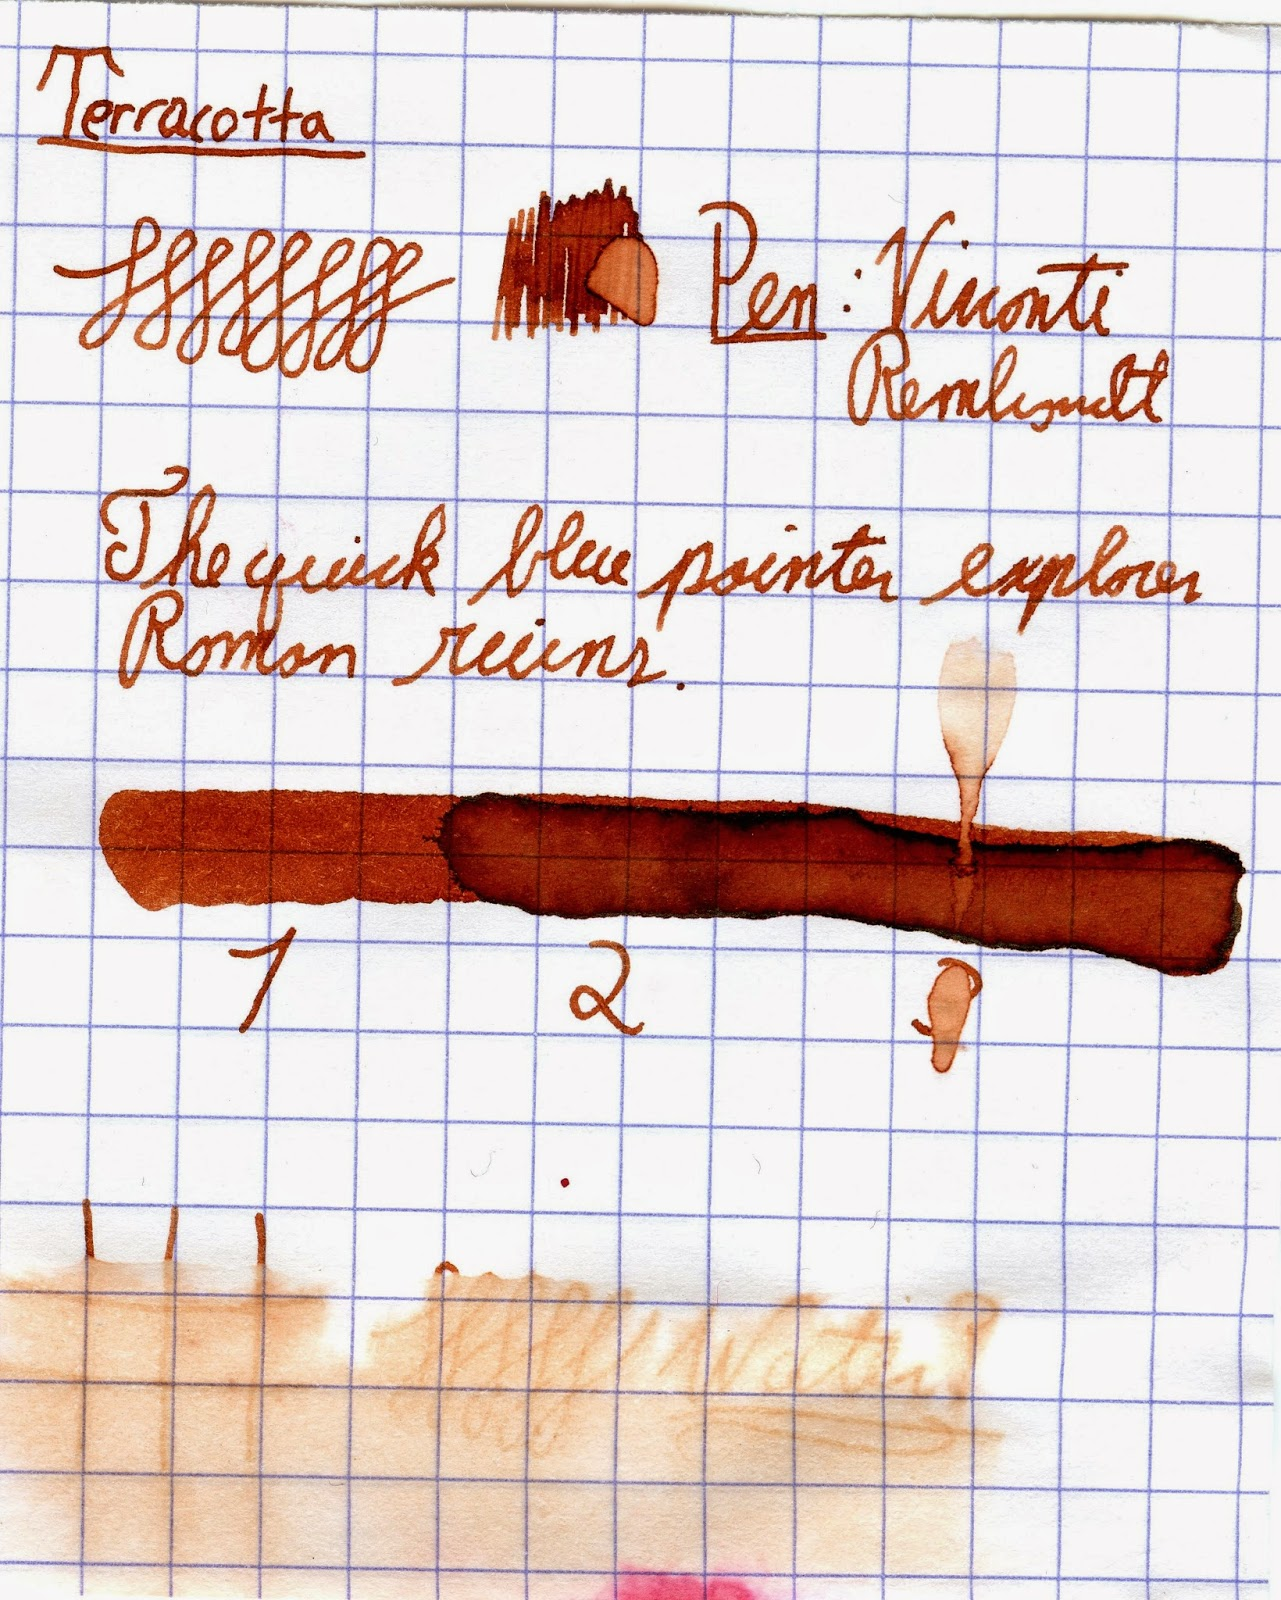 Diamine 150th Anniversary Inks Overview - Terracotta